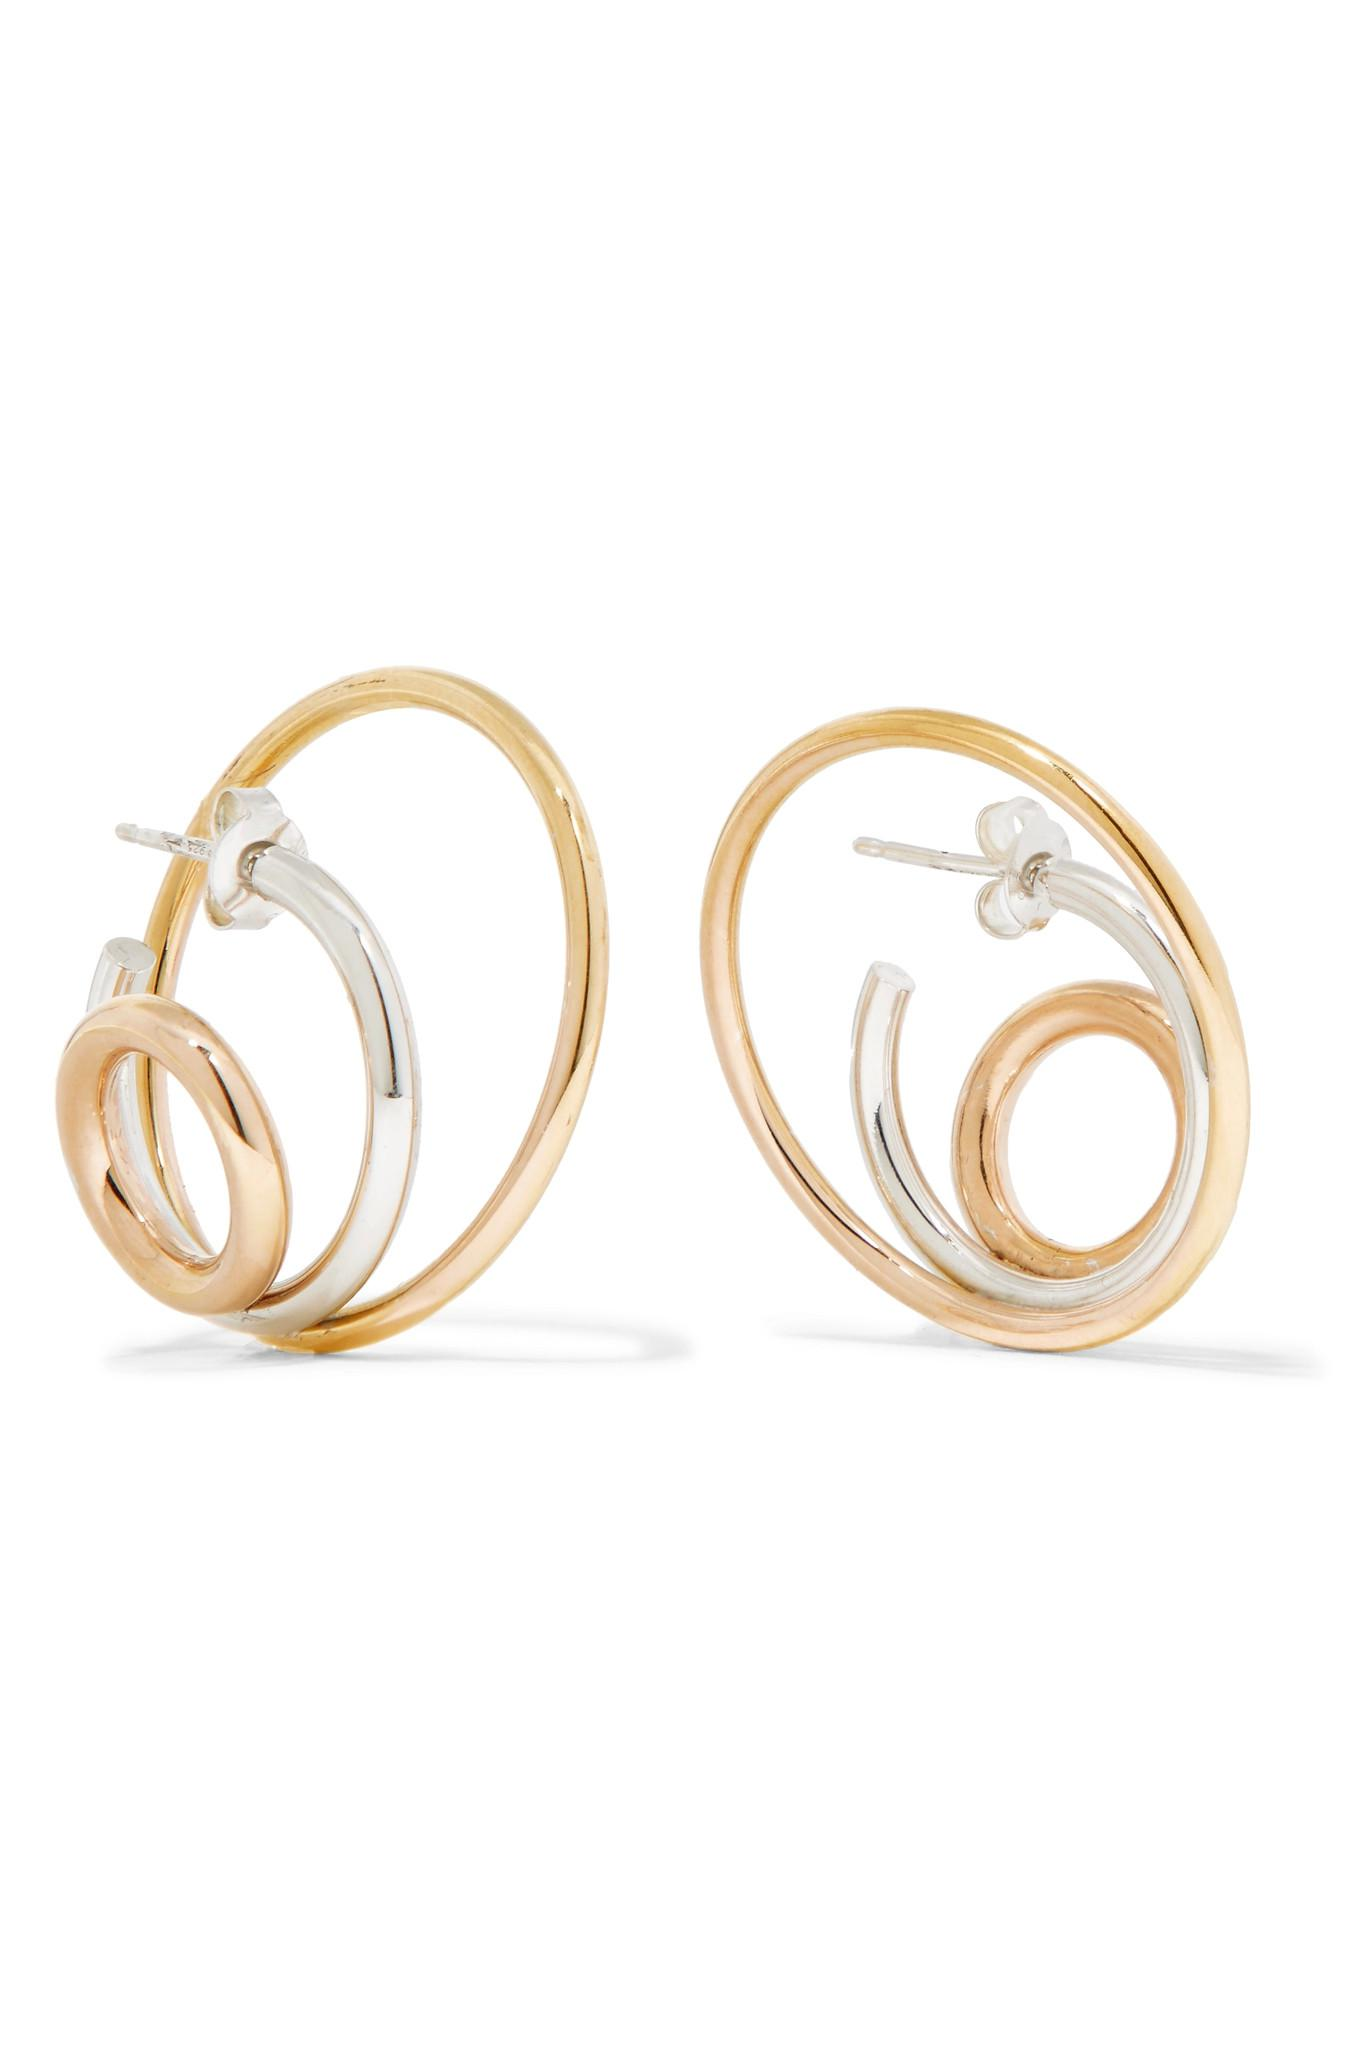 Charlotte Chesnais Richoche 18-karat Gold, Silver And Rose Gold Earrings